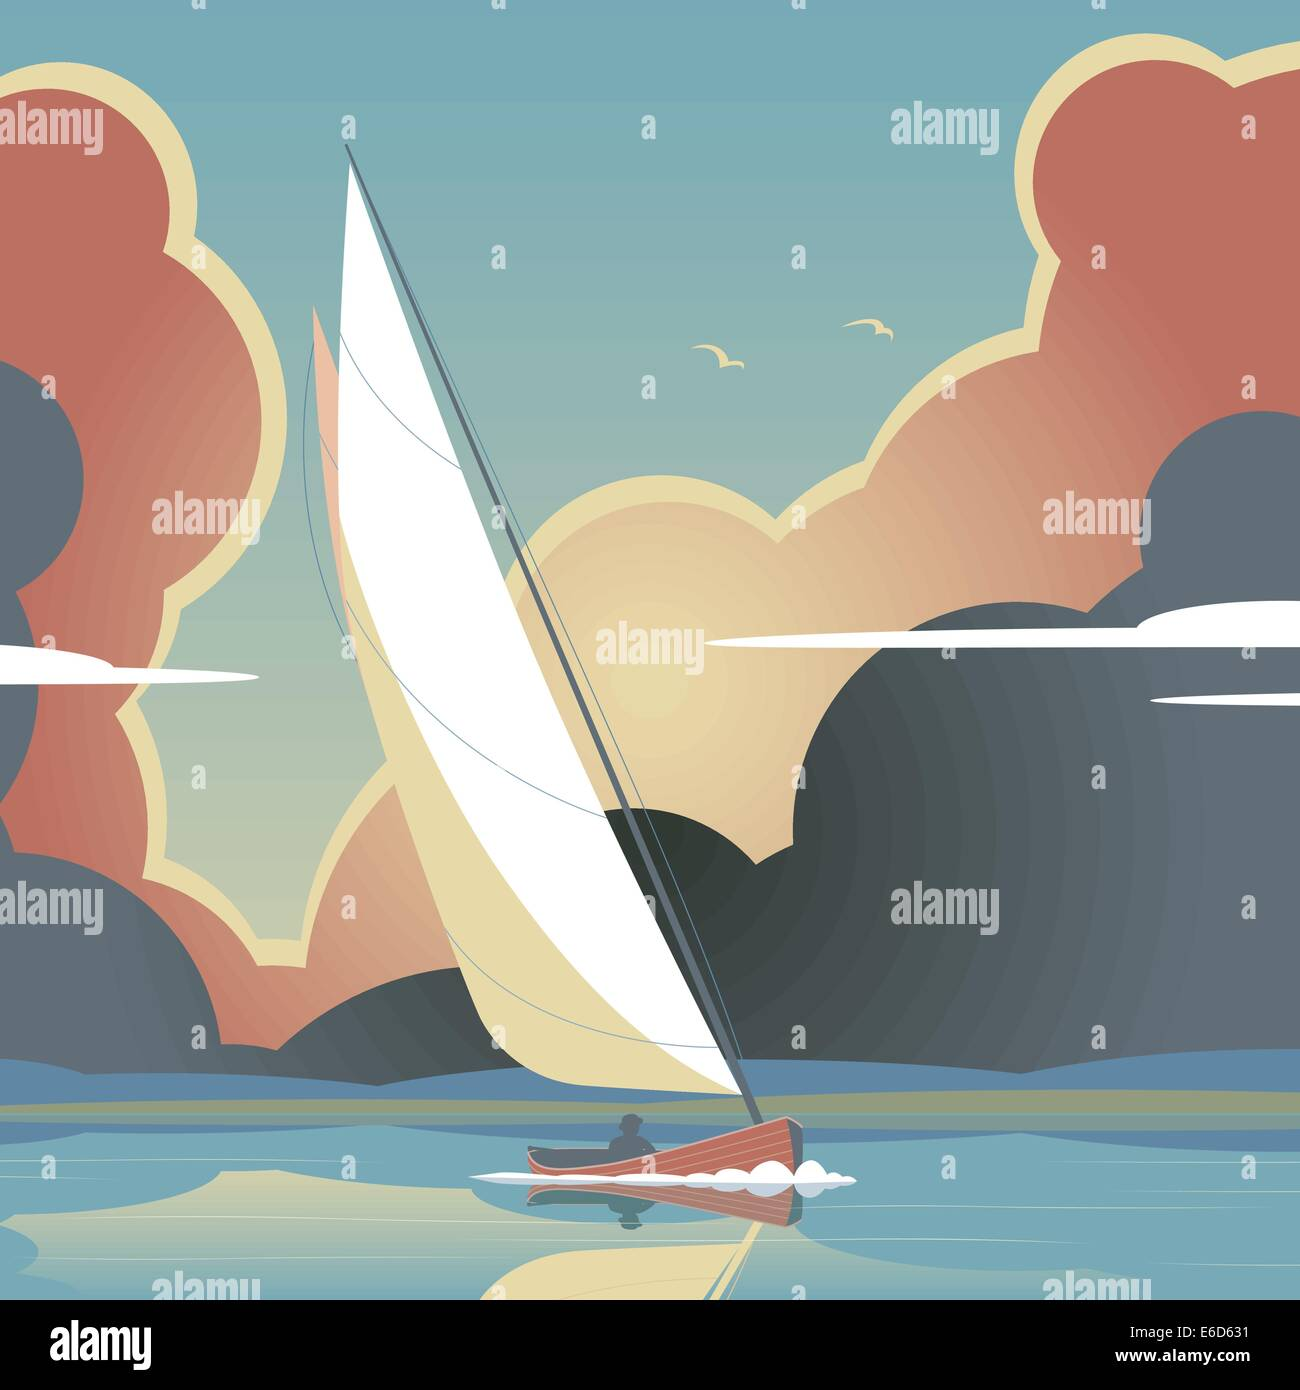 Editable vector illustration of a man sailing a yacht on calm water - Stock Image